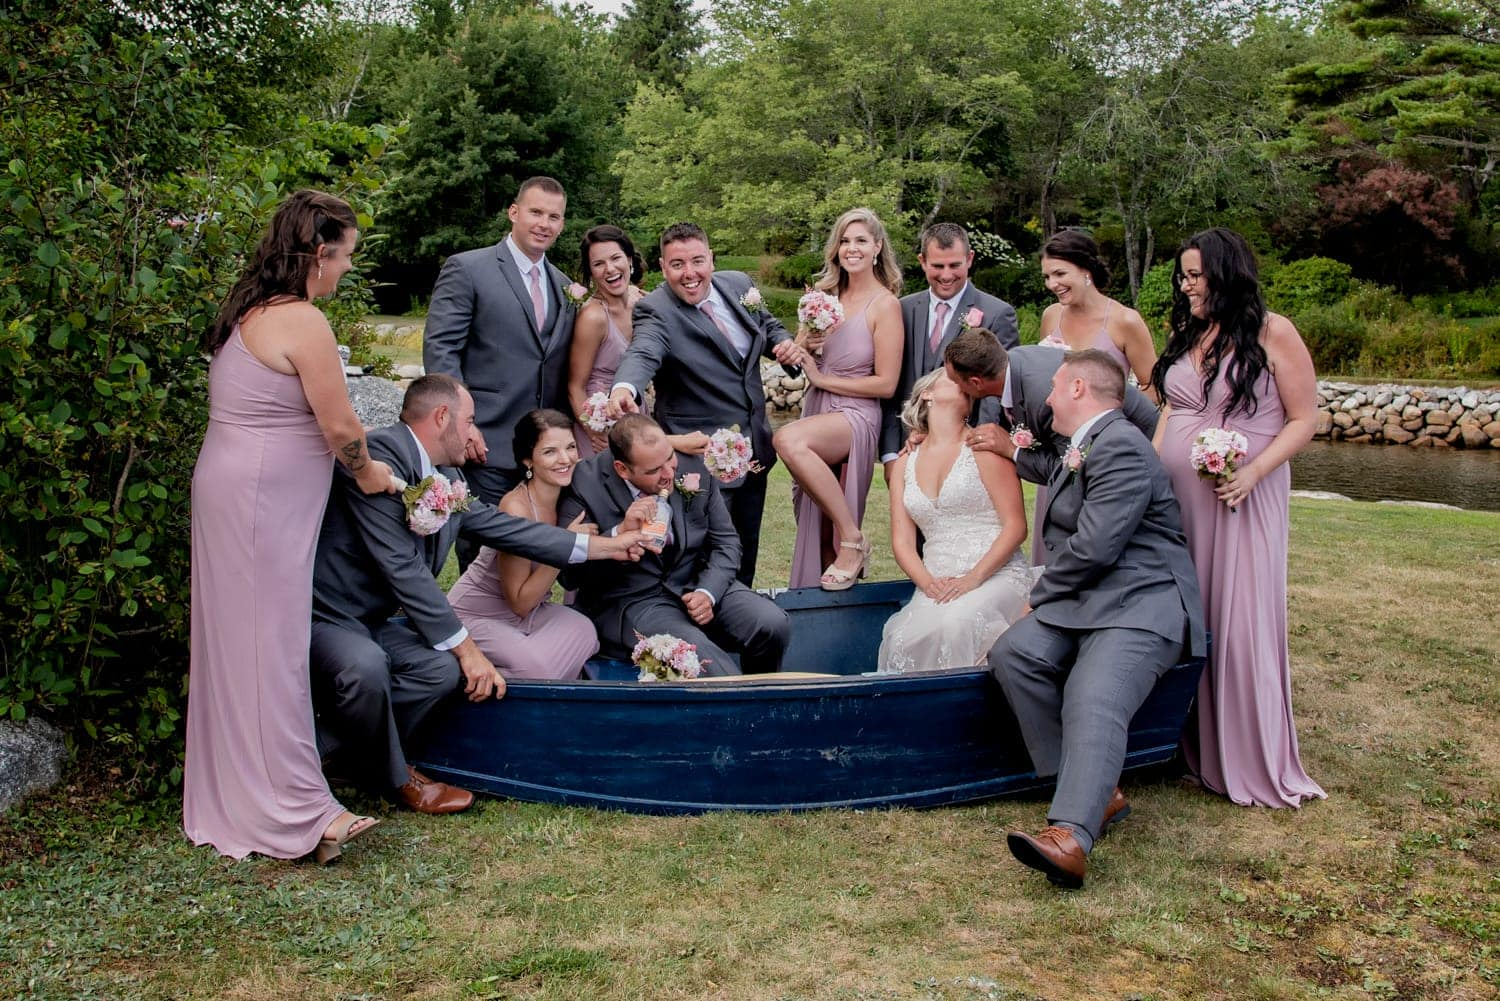 funny wedding party photos with bride and groom in a boat during a backyard wedding in Halifax